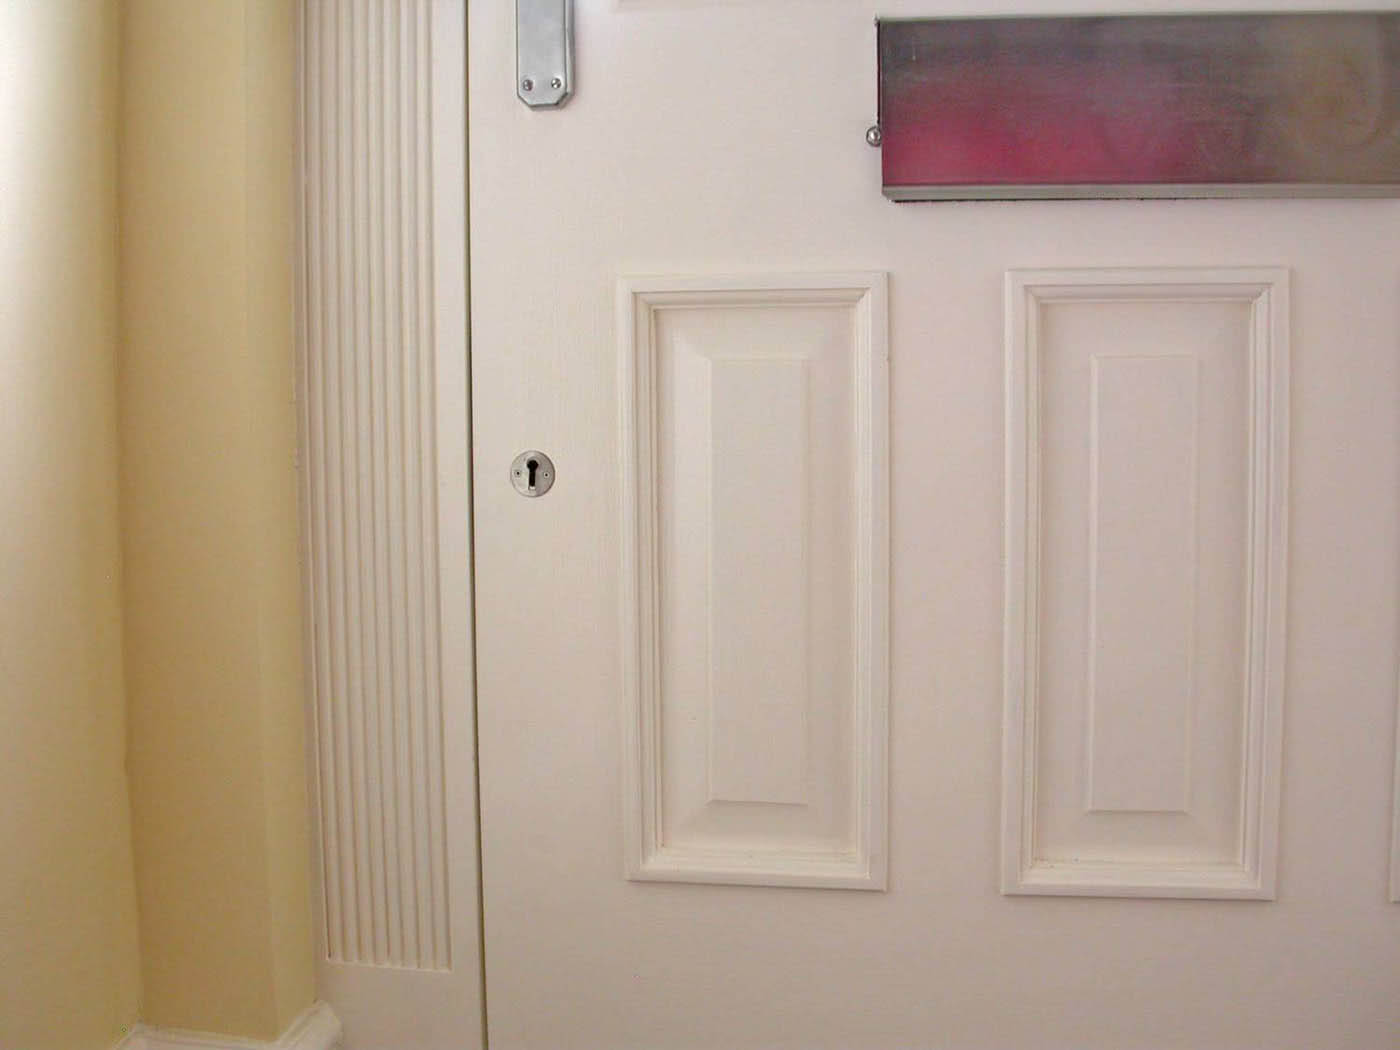 Interior view of two raised panels to a handmade meranti hardwood door and one of two mortice locks